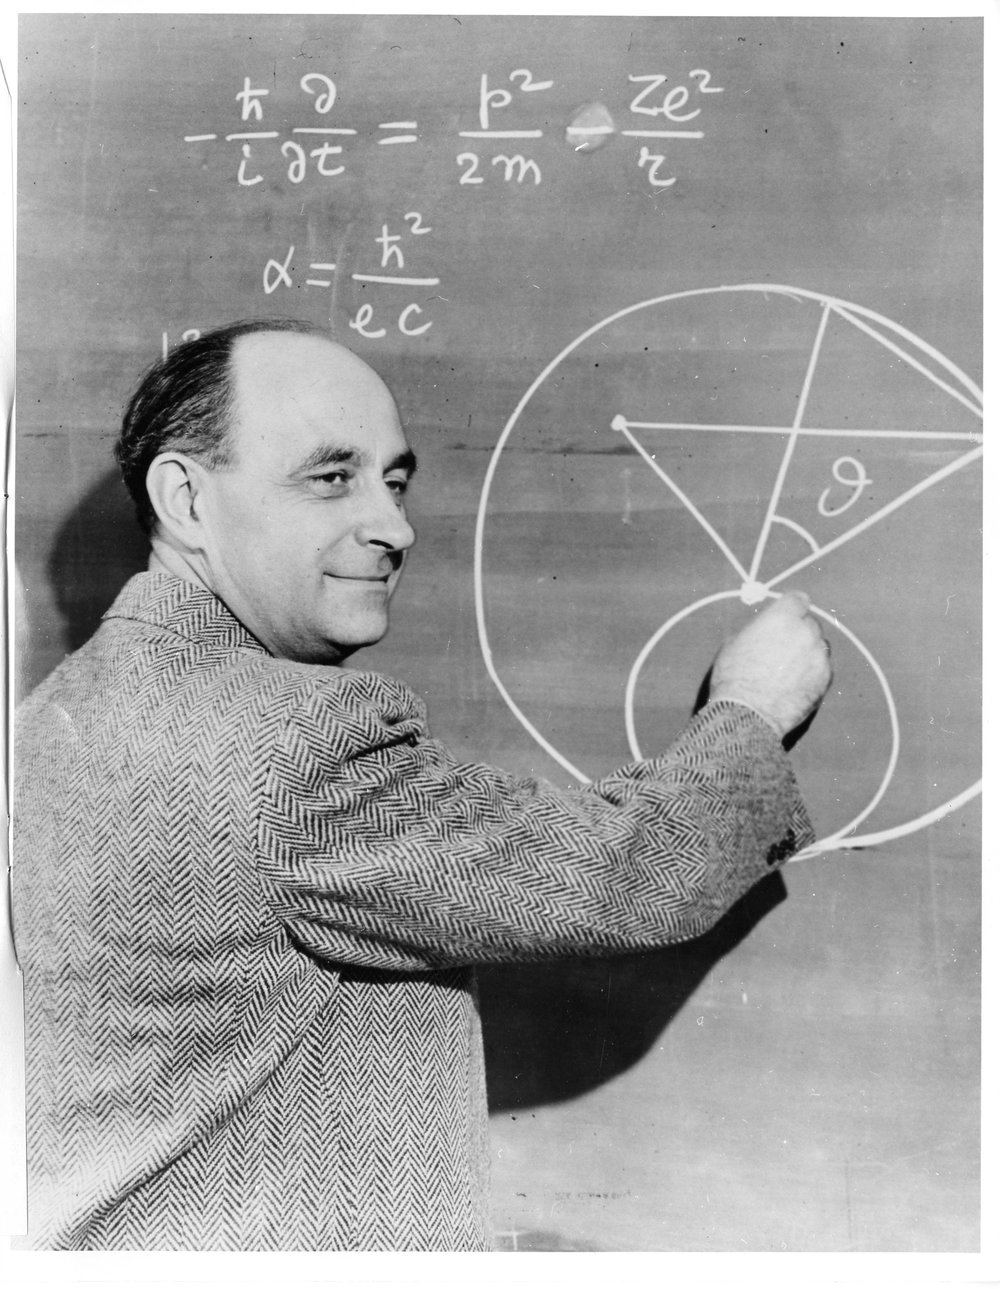 Enrico_Fermi_at_the_blackboard.jpg